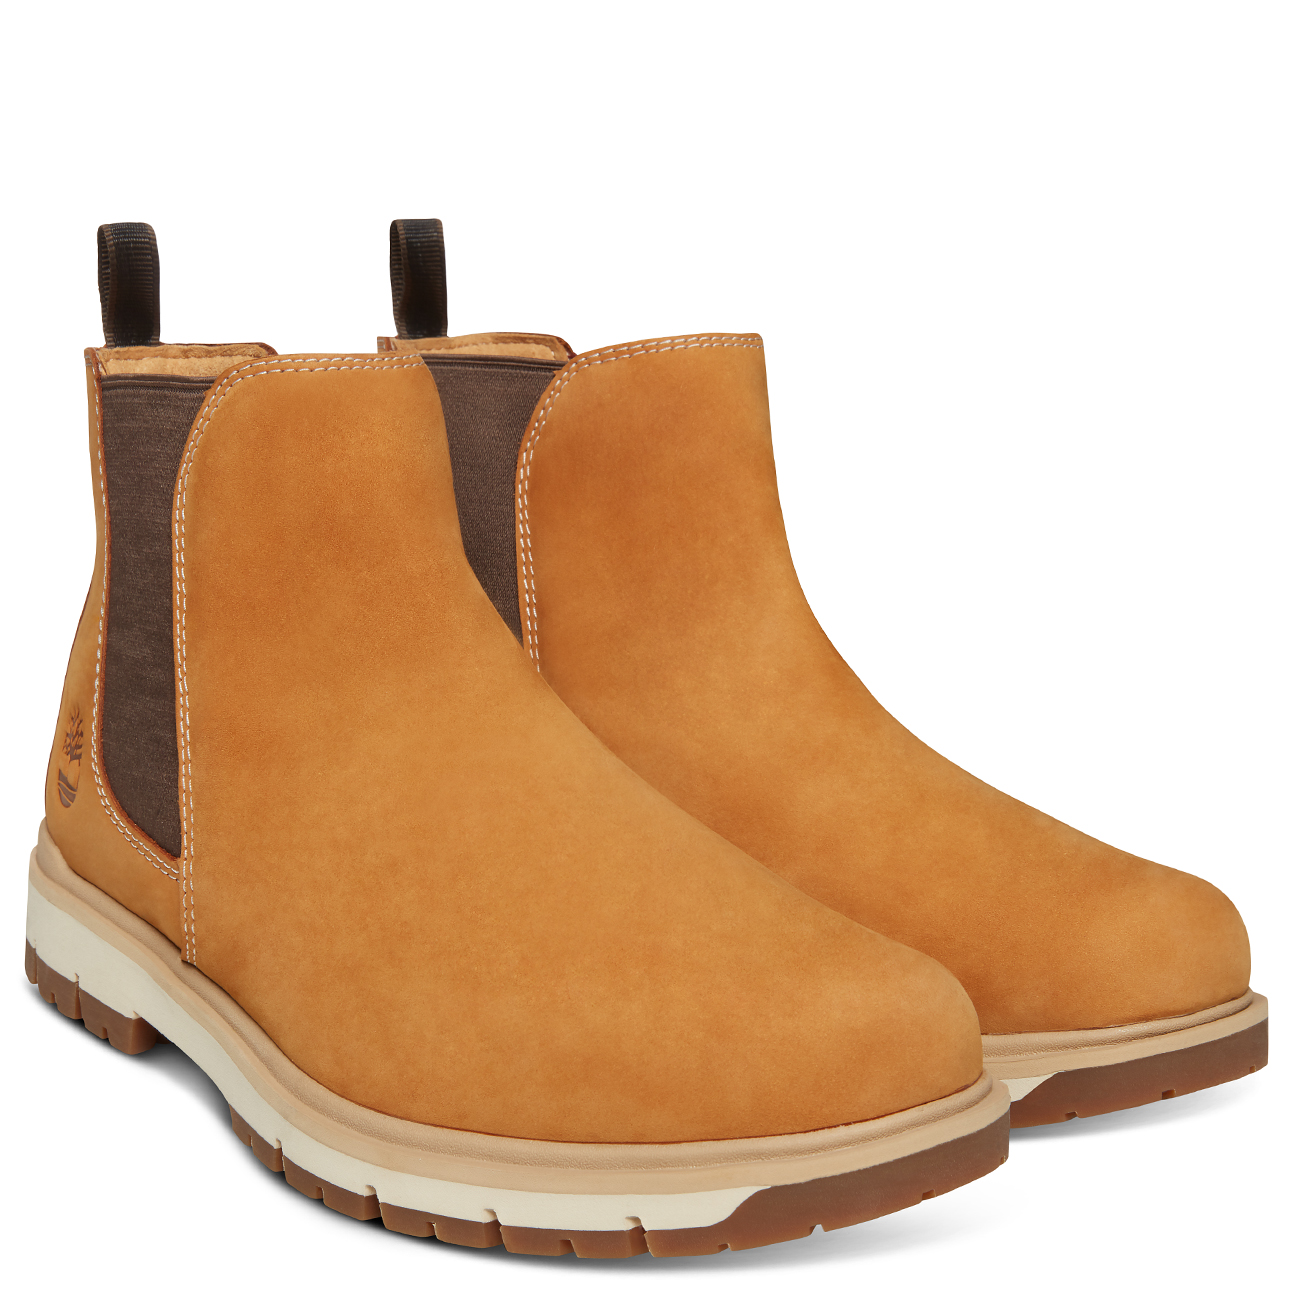 d830ca99ffc6 Mens Timberland Radford PT Chelsea Hiking Leather Walking Ankle Boot ...